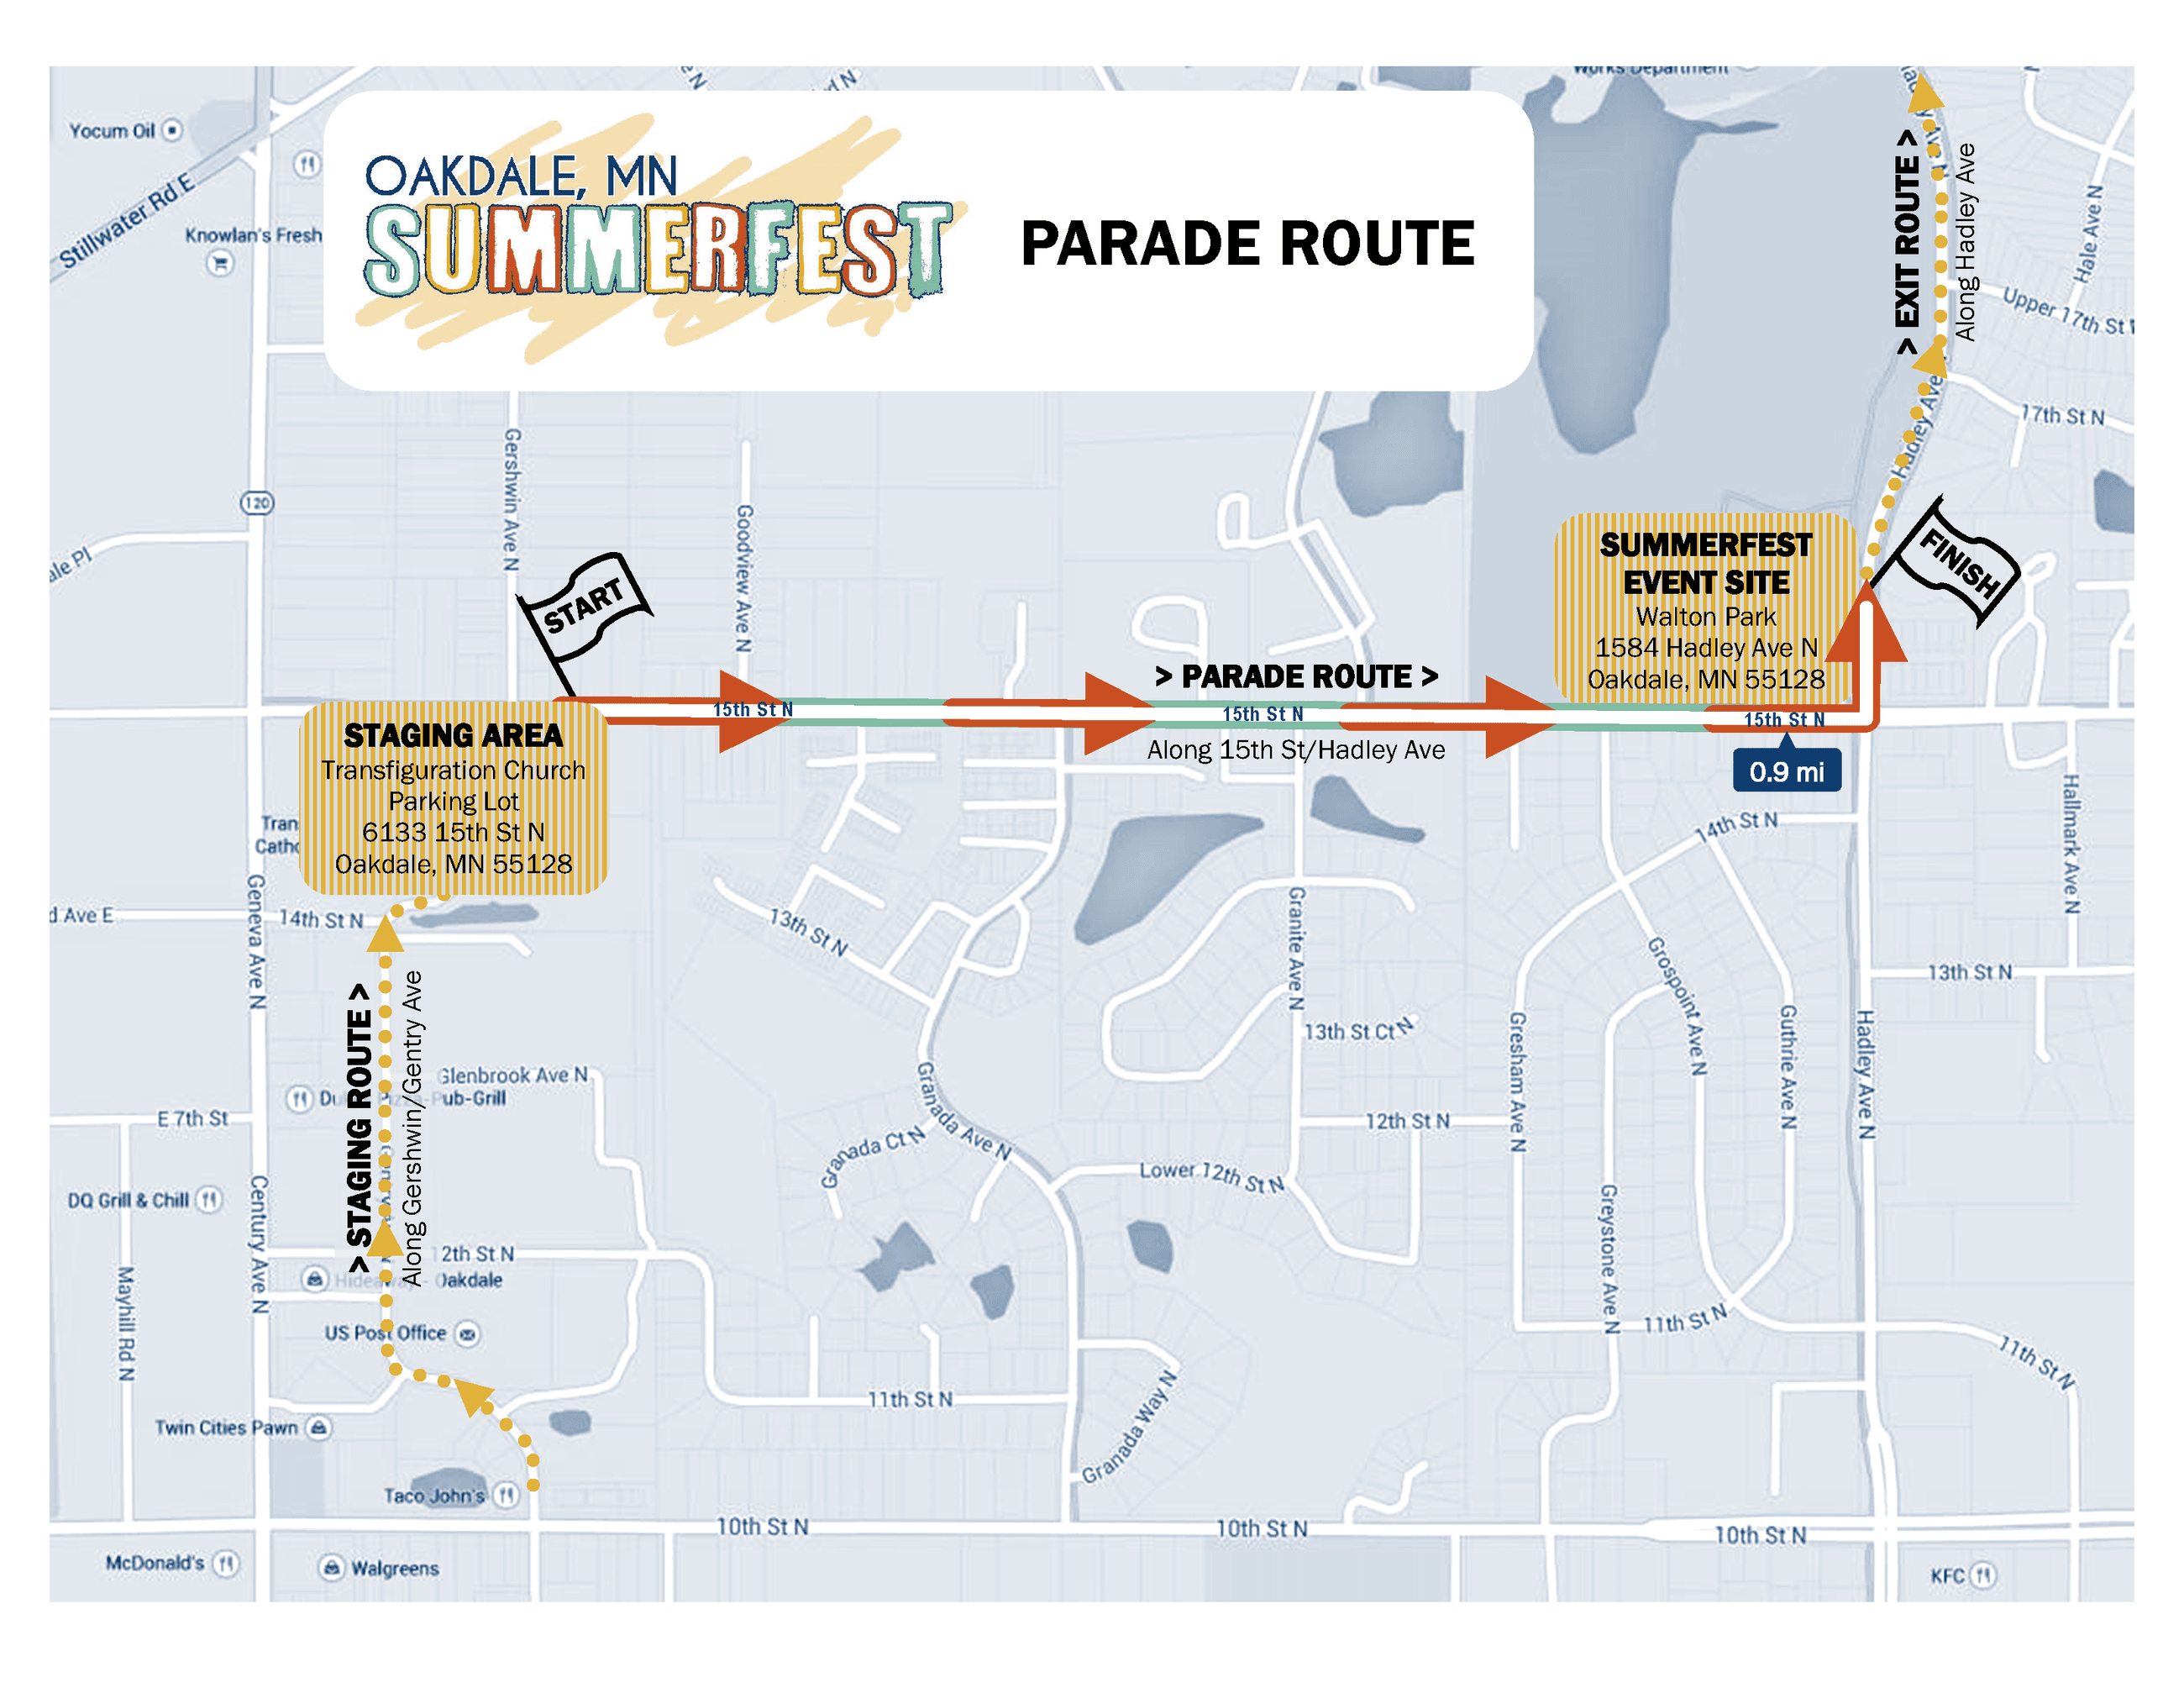 Summerfest Parade Route